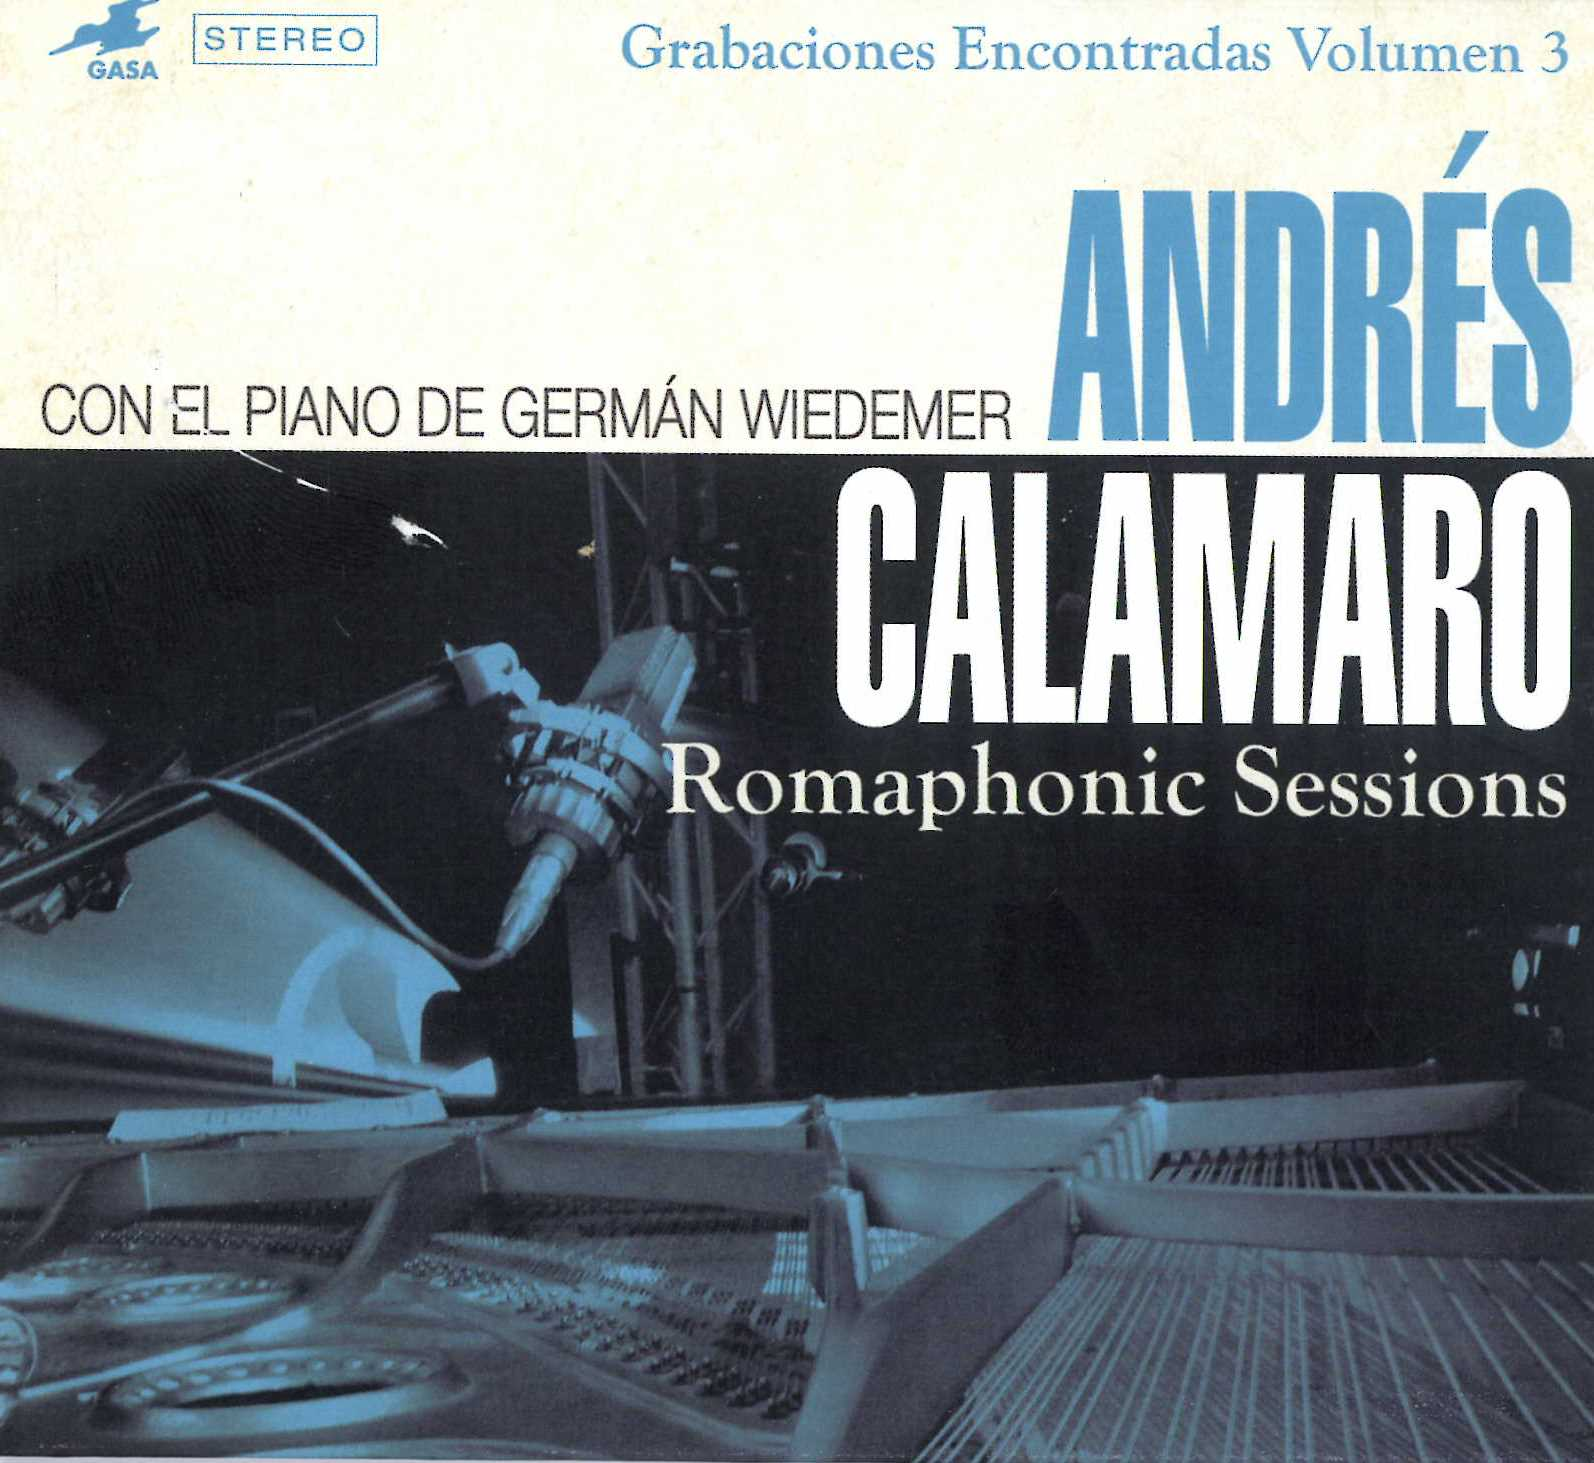 Grabaciones encontradas Vol. 3: Romaphonic sessions